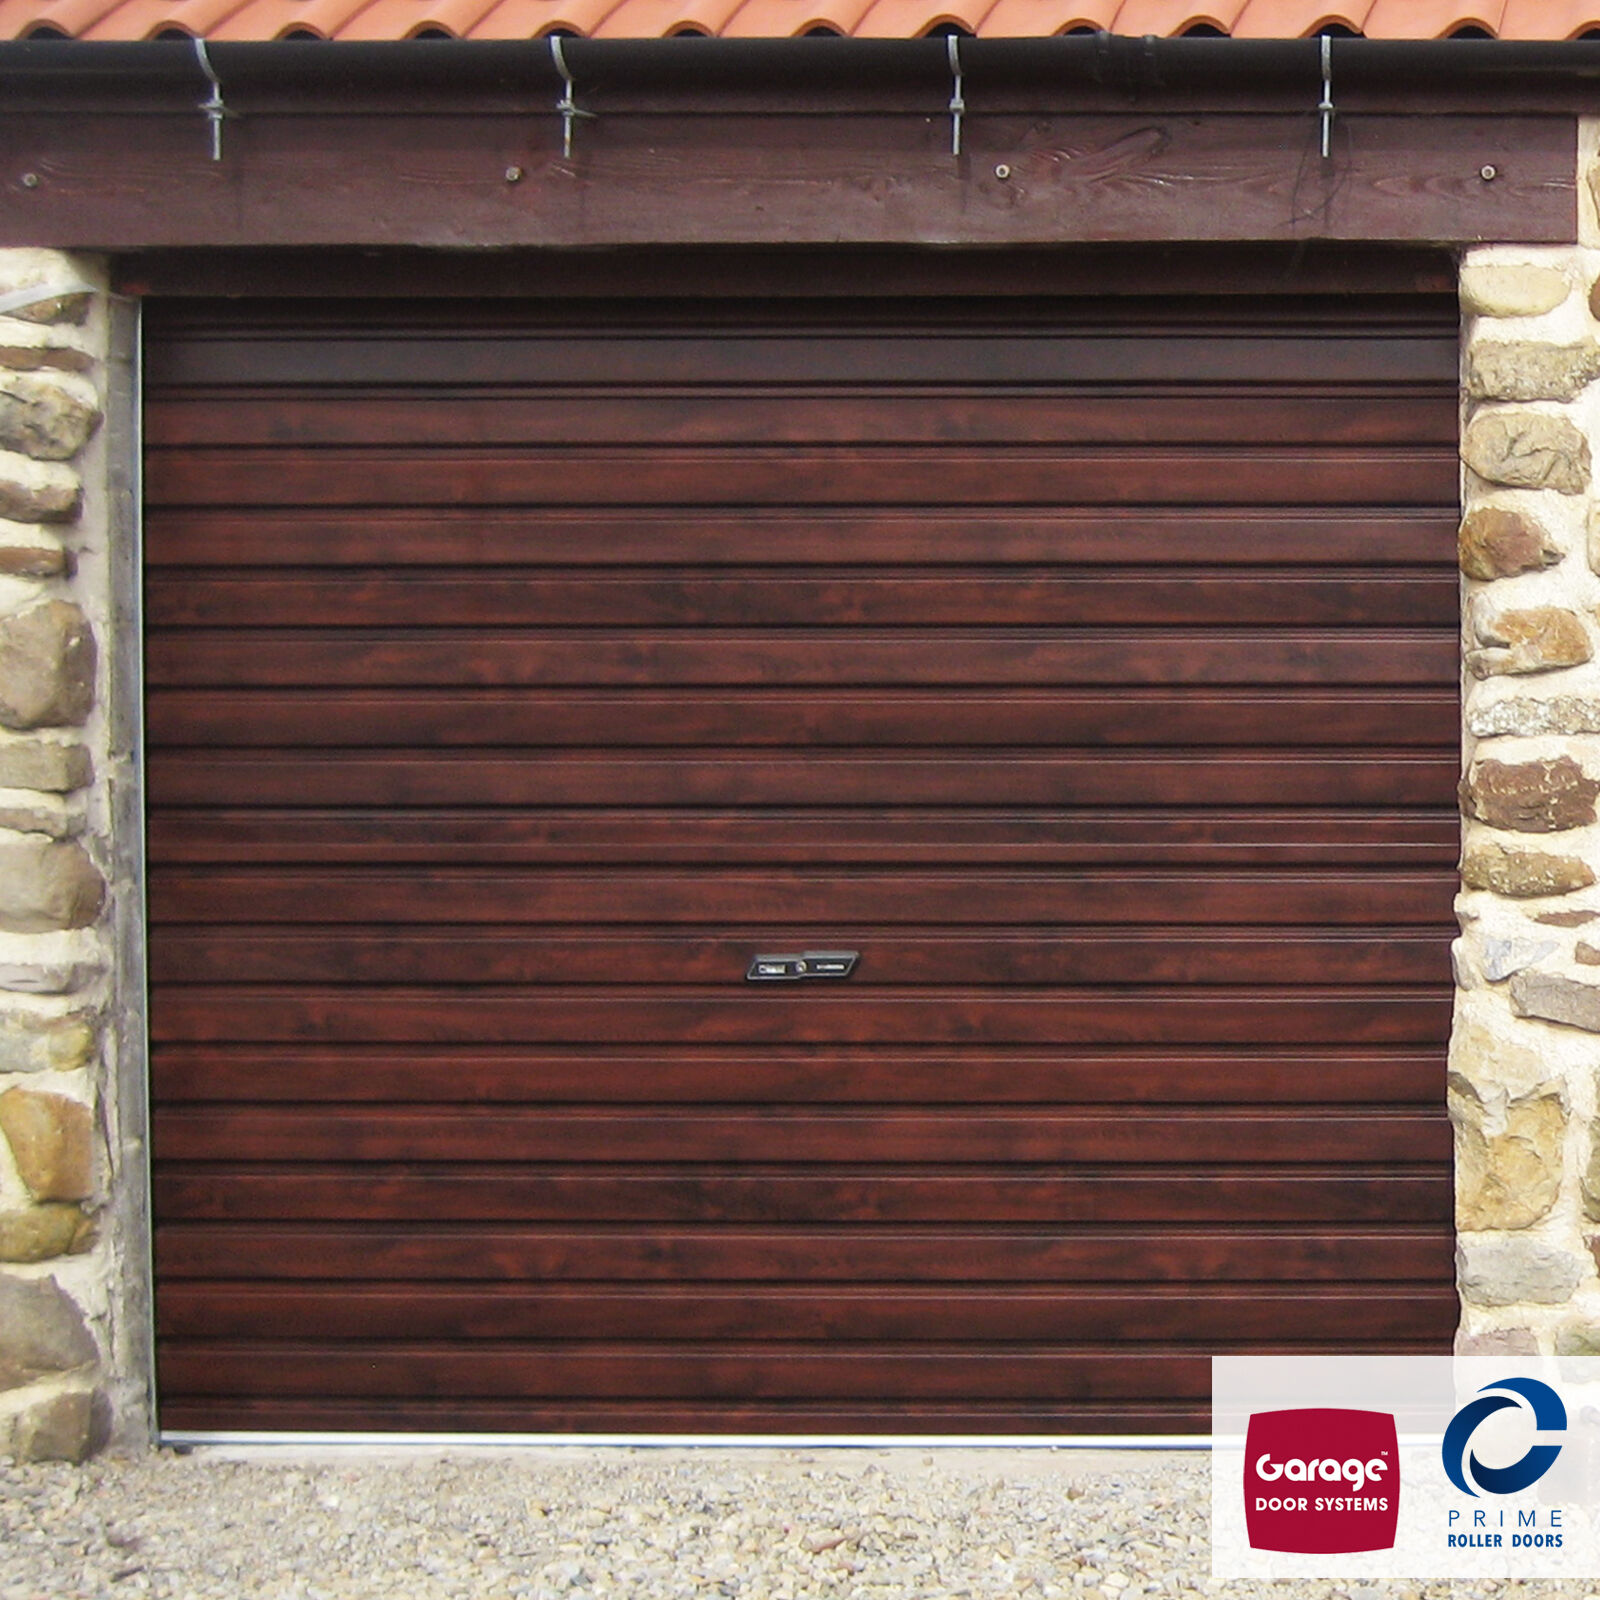 & Best Roller Garage Door Opener deals | Compare Prices on dealsan.co.uk